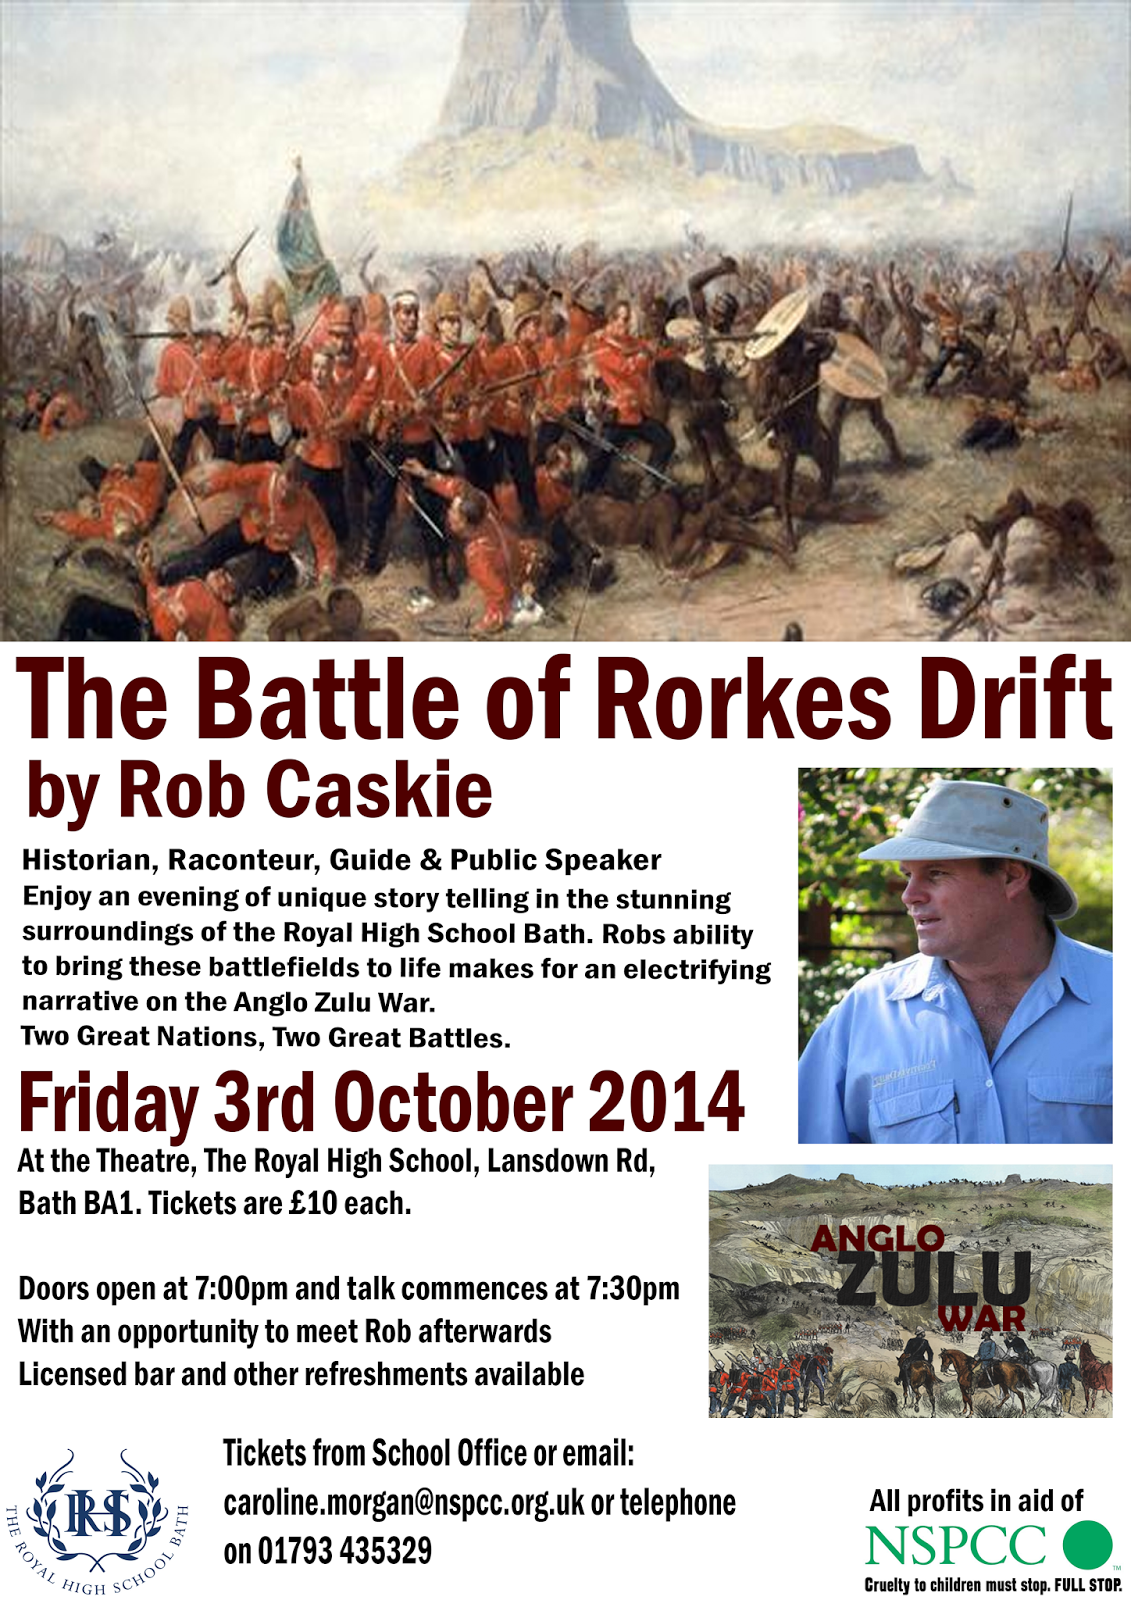 analysis of the battle of rorkes drift The battle of rorke's drift, also known as the defence of rorke's drift, was a battle in the anglo-zulu warthe defence of the mission station of rorke's drift, under the command of lieutenants john chard of the royal engineers and gonville bromhead, immediately followed the british army's defeat at the battle of isandlwana on 22 january 1879, and continued into the following day.